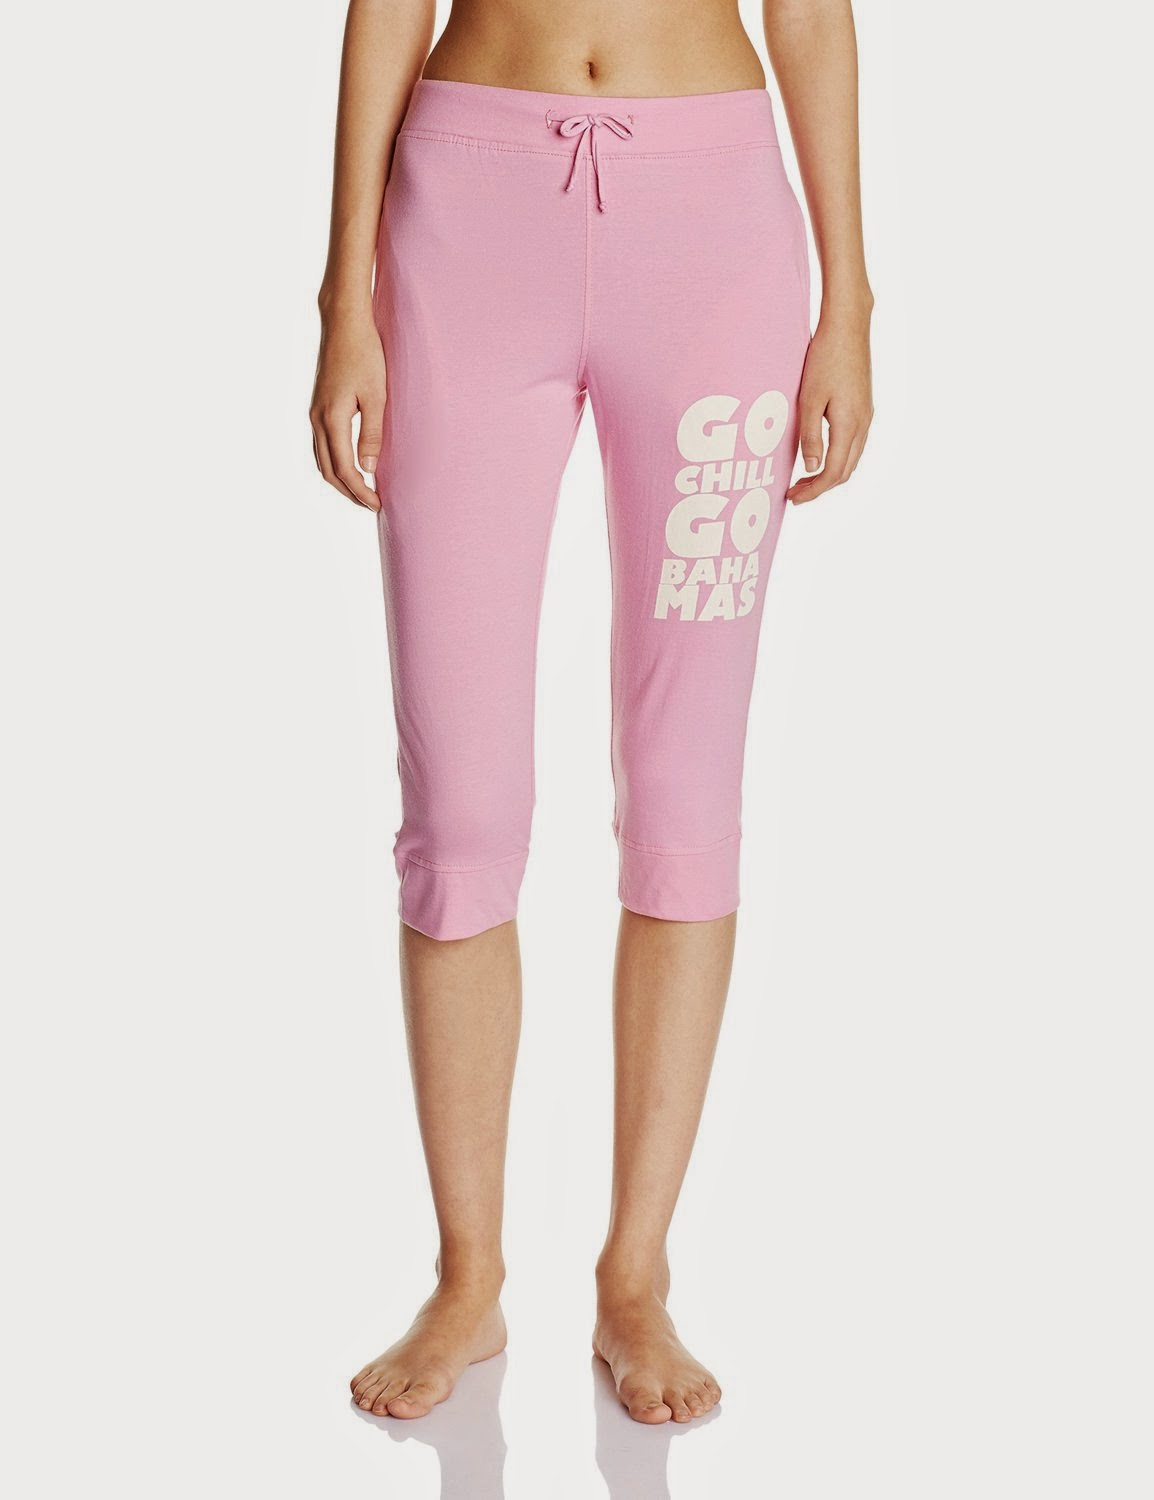 Buy GoBahamas Women's Cotton Capri Rs. 134 only at Amazon.